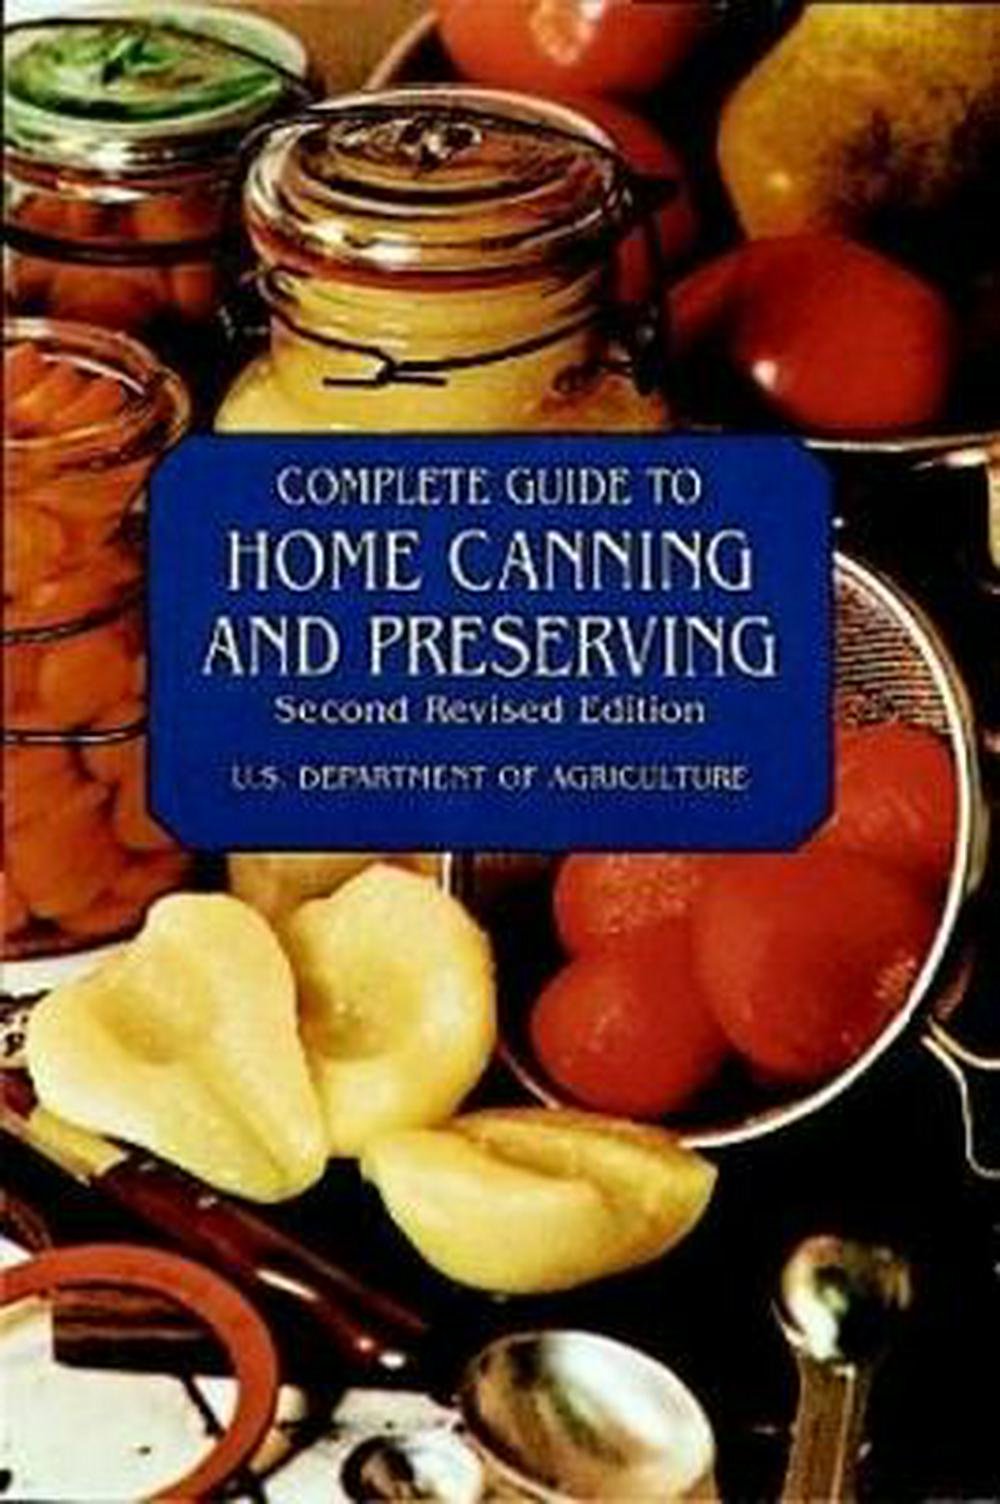 Complete Guide to Home Canning and Preserving by U.S. D OF AGR., ISBN: 9780486409313